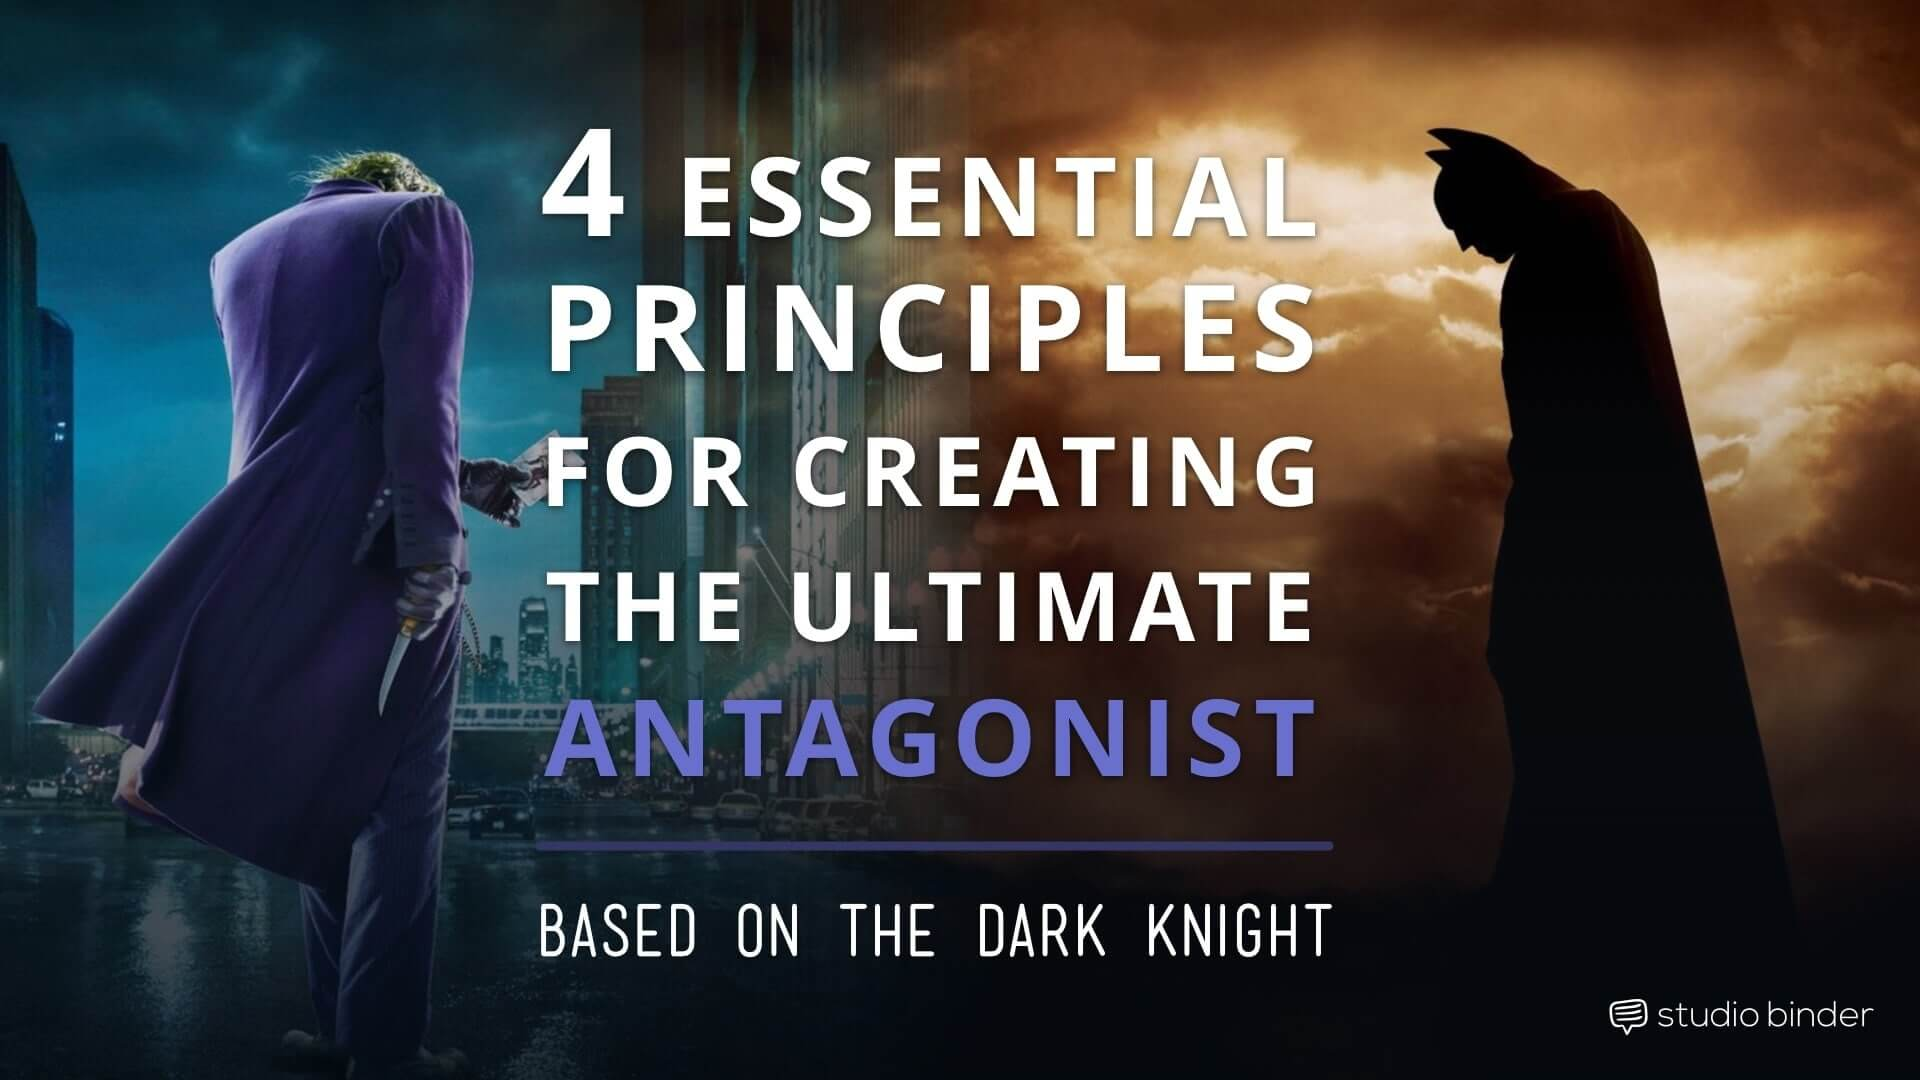 The 4 Essential Principles for Creating the Ultimate Antagonist